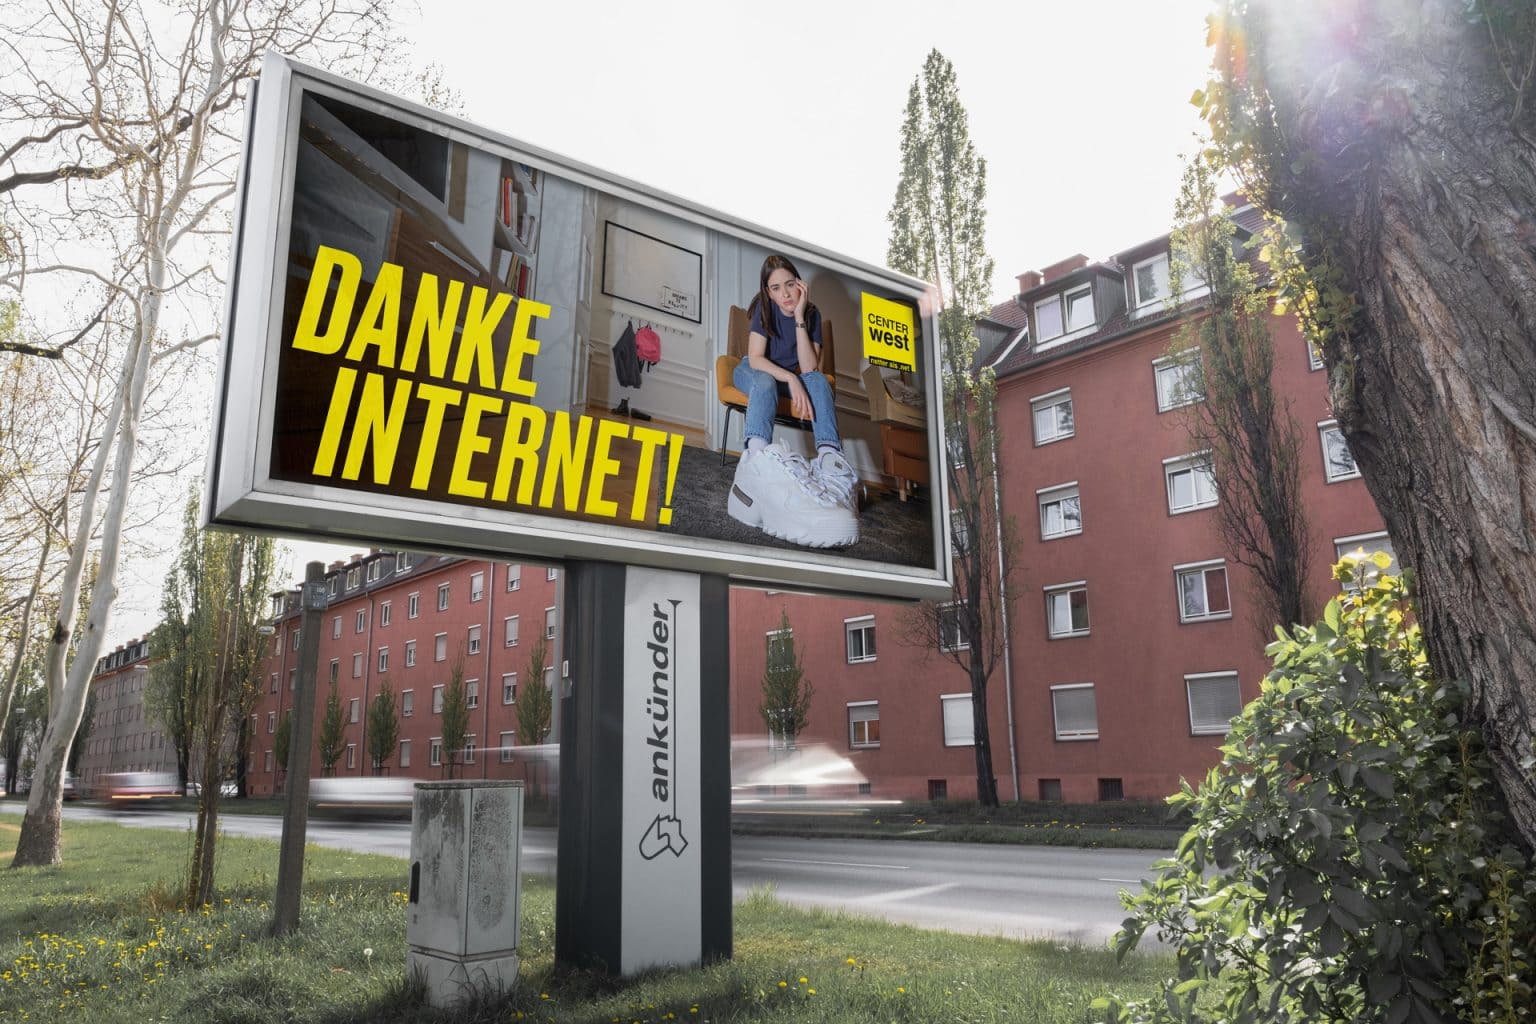 Center West Danke Internet 24 Bogen